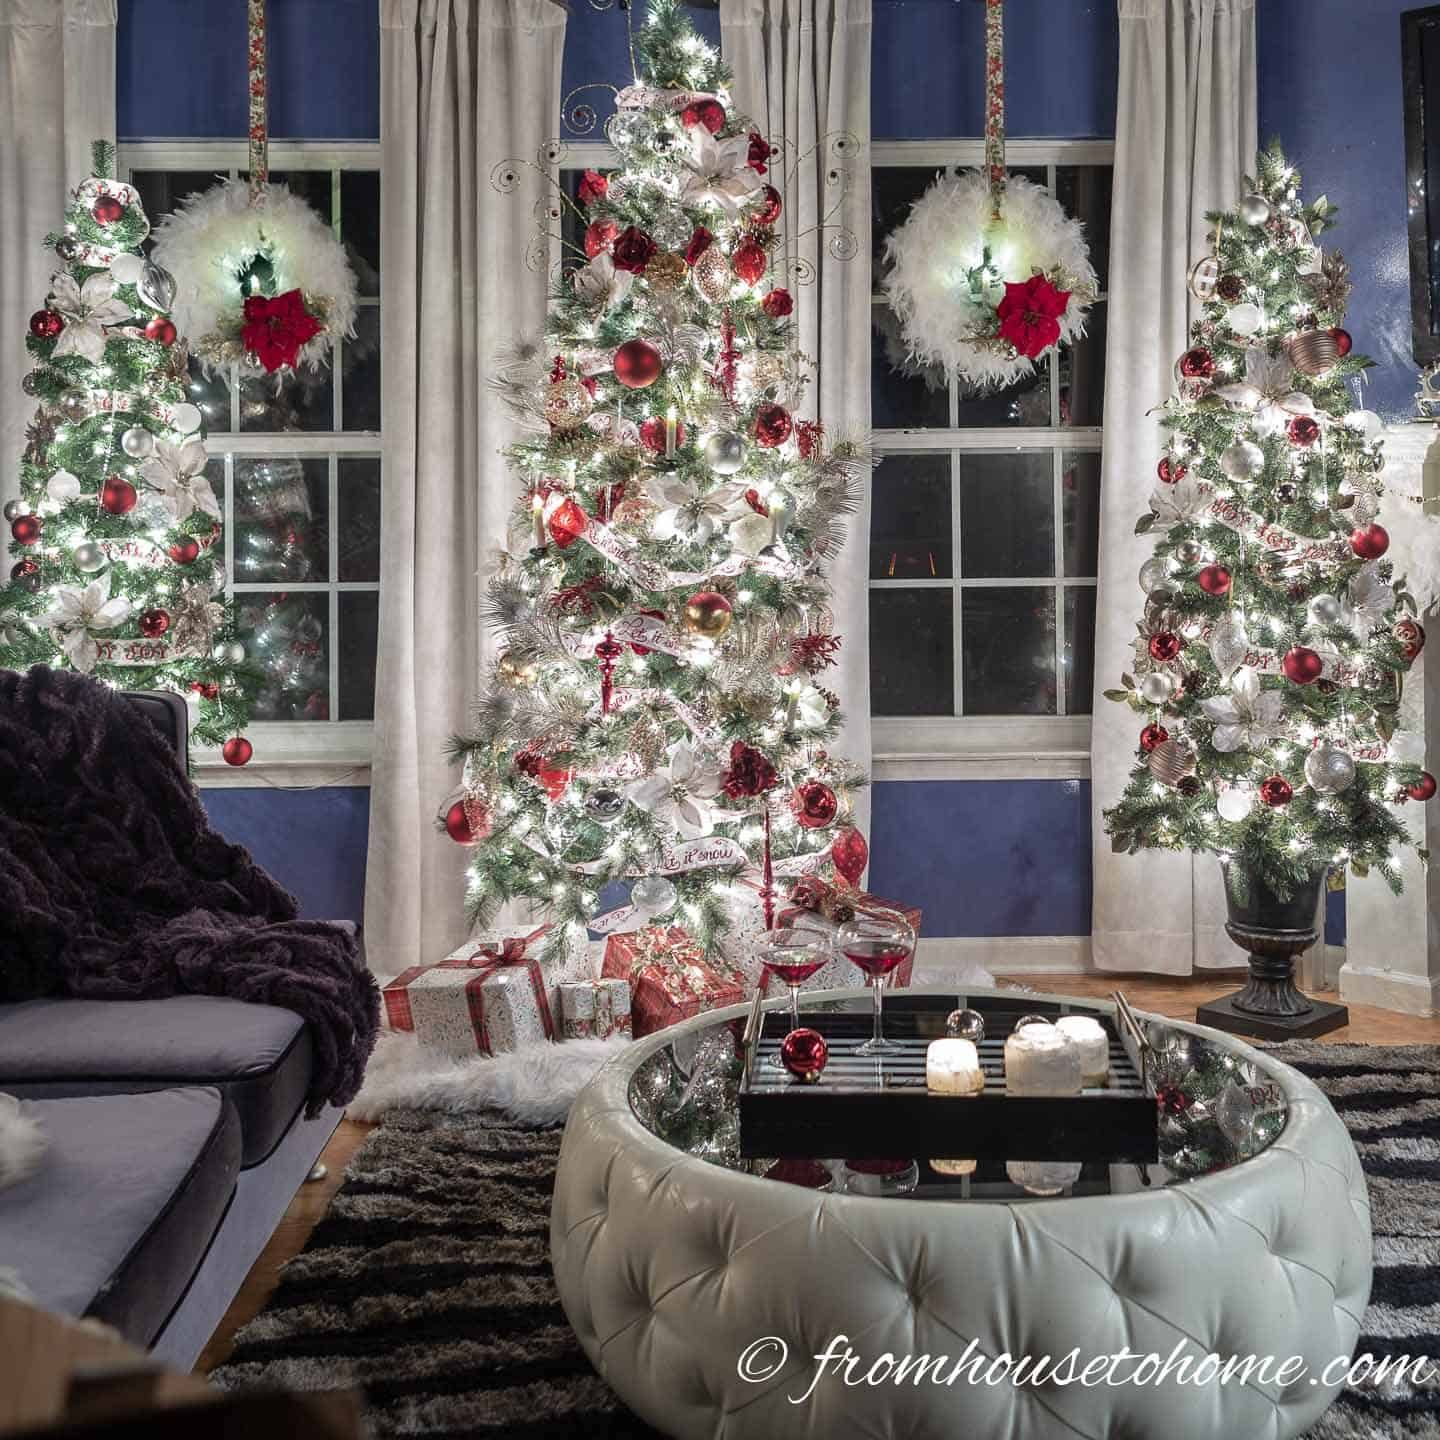 White Red And Gold Christmas Home Decor Ideas And 30 Other Christmas Decorating Ideas Red Christmas Decor Christmas Home Christmas Decorations For The Home